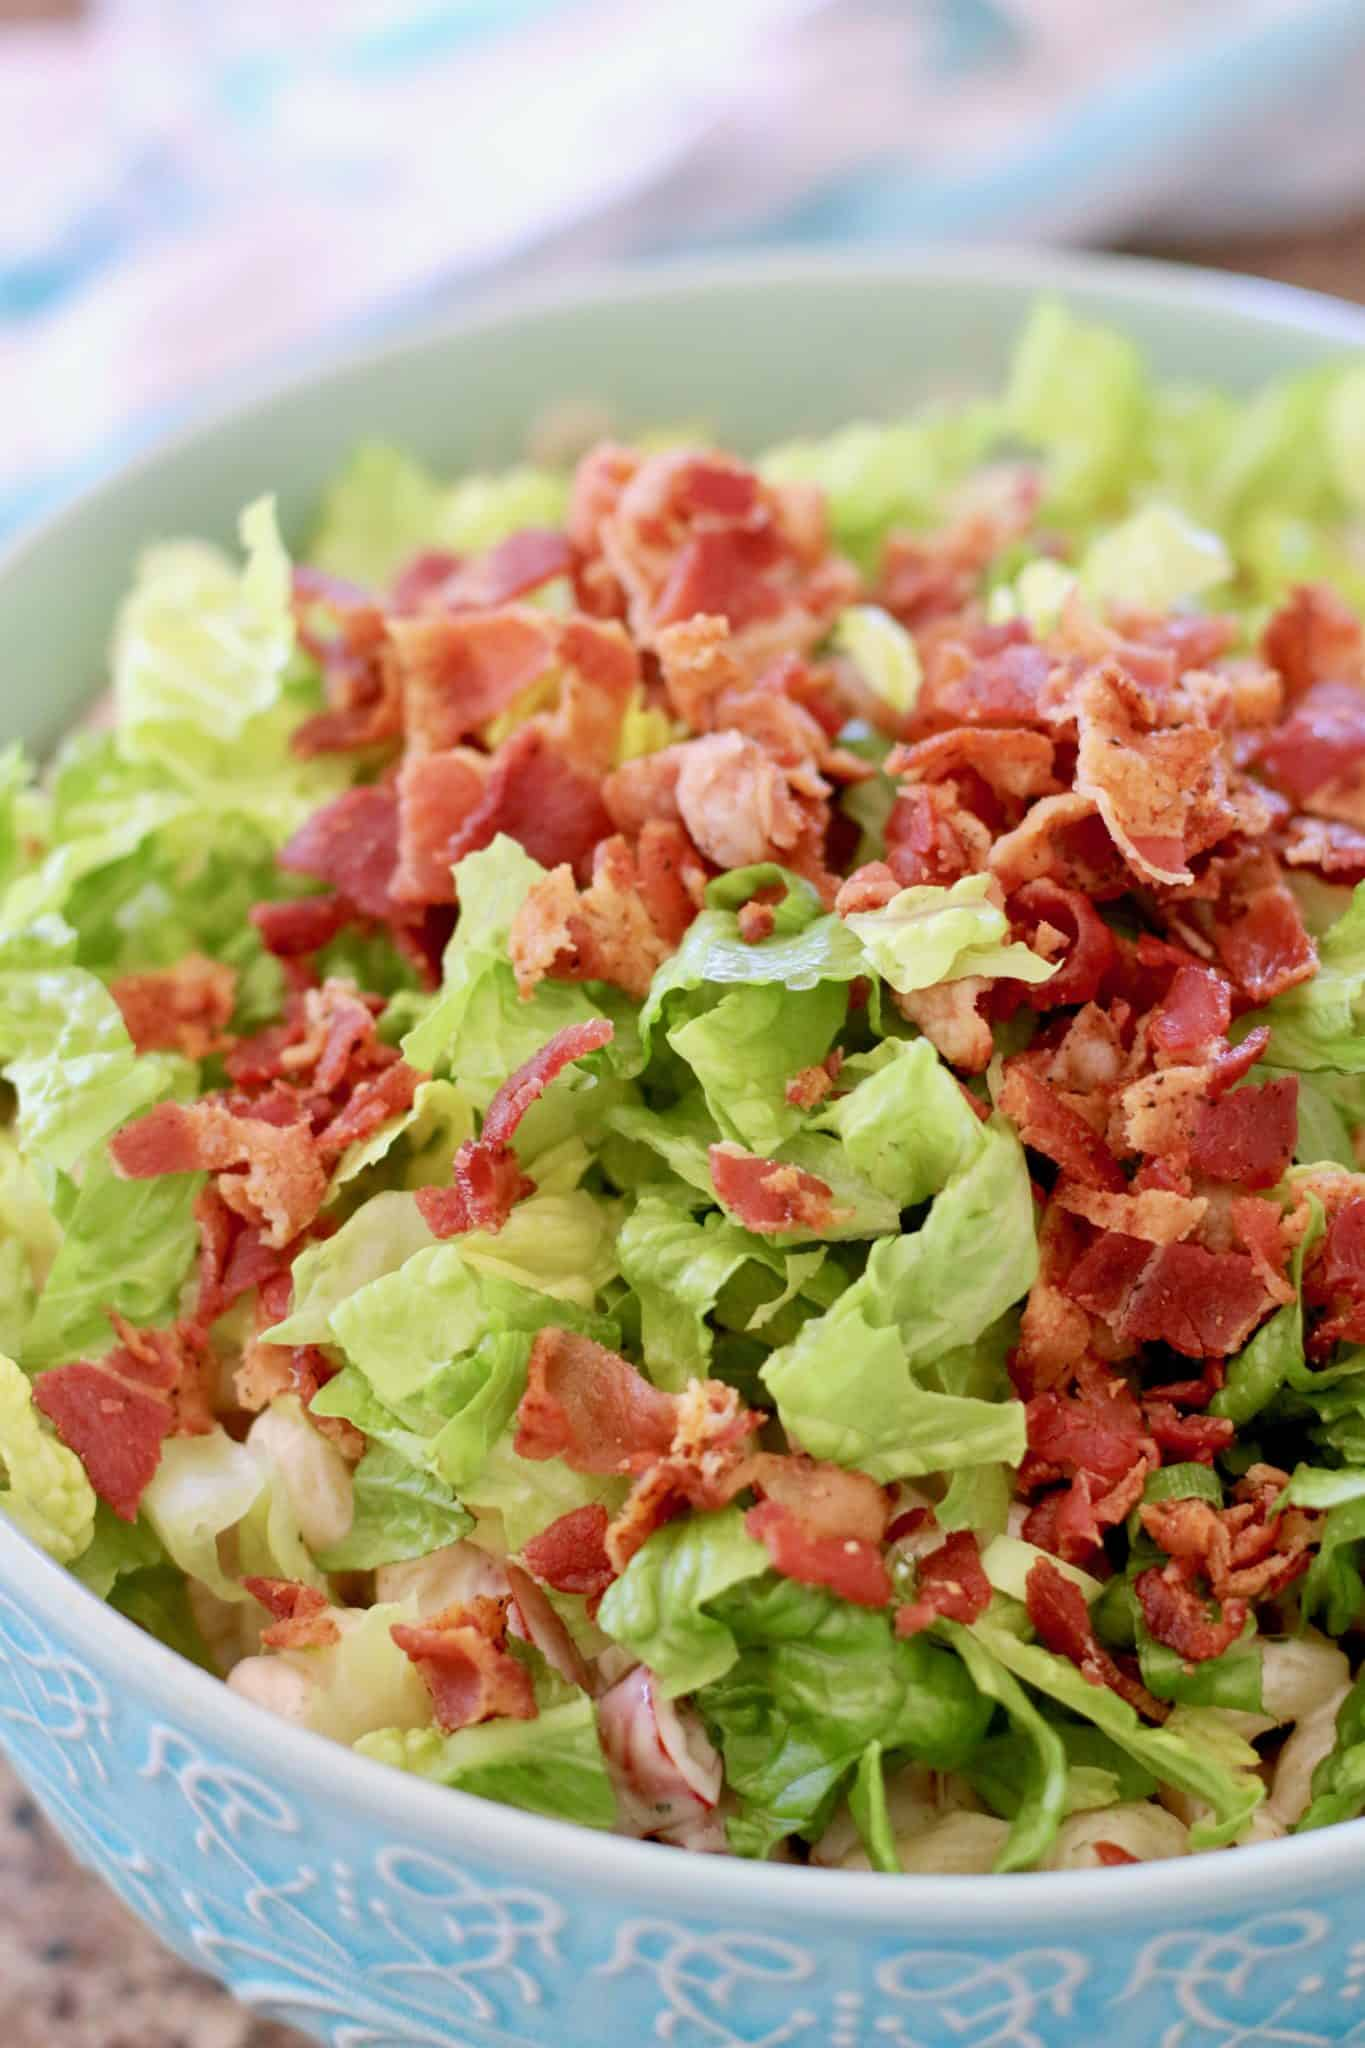 BLT Pasta Salad with chopped romaine lettuce and oven baked bacon.